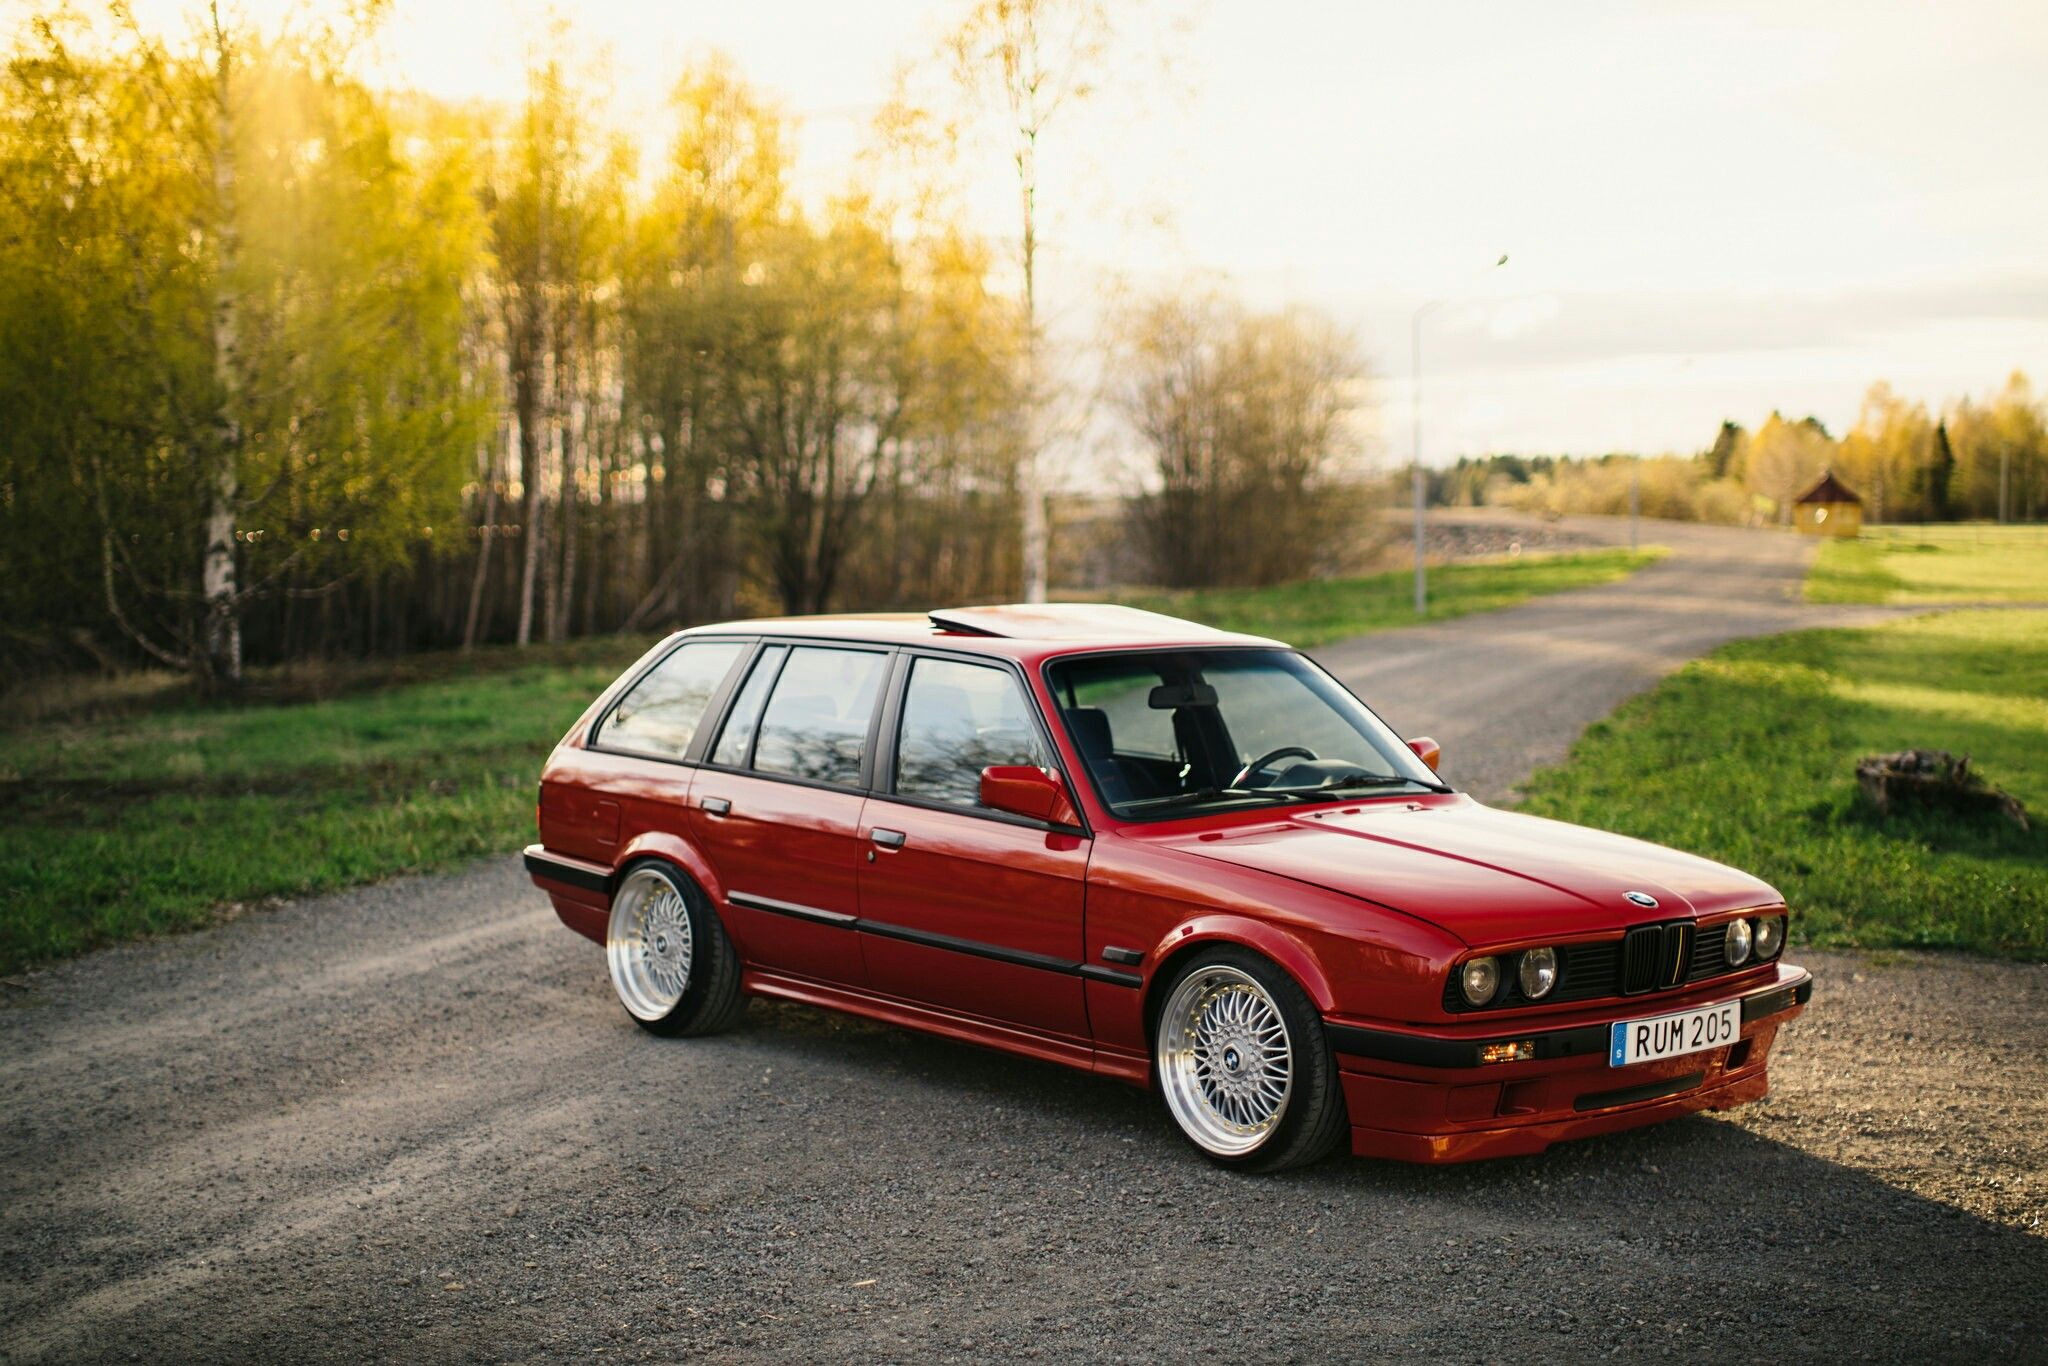 E30 Touring With Images Bmw E30 Touring Bmw E30 Bmw